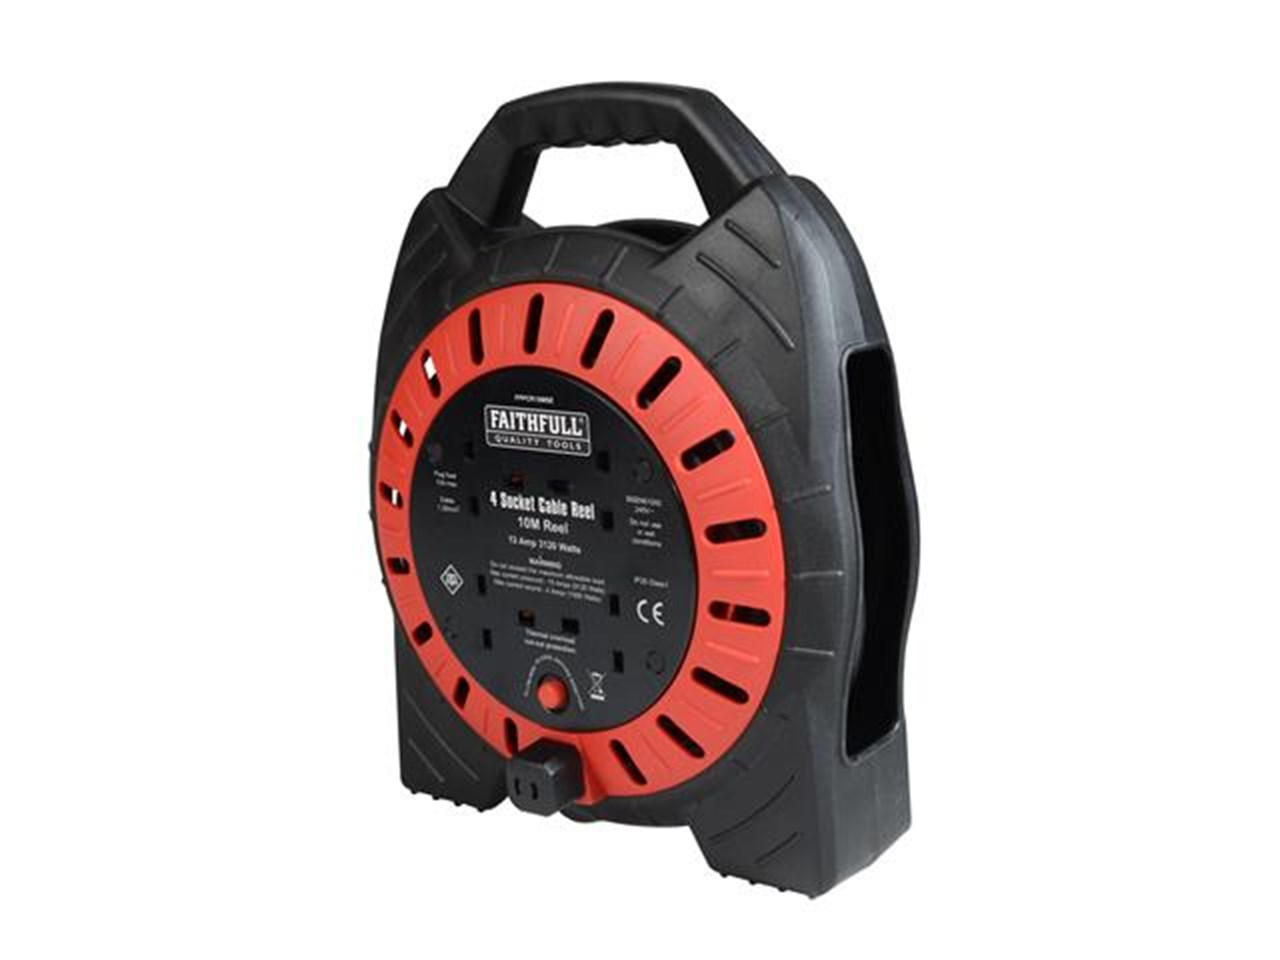 FAITHFULL - 10M CABLE REEL - XMS1910CABLE